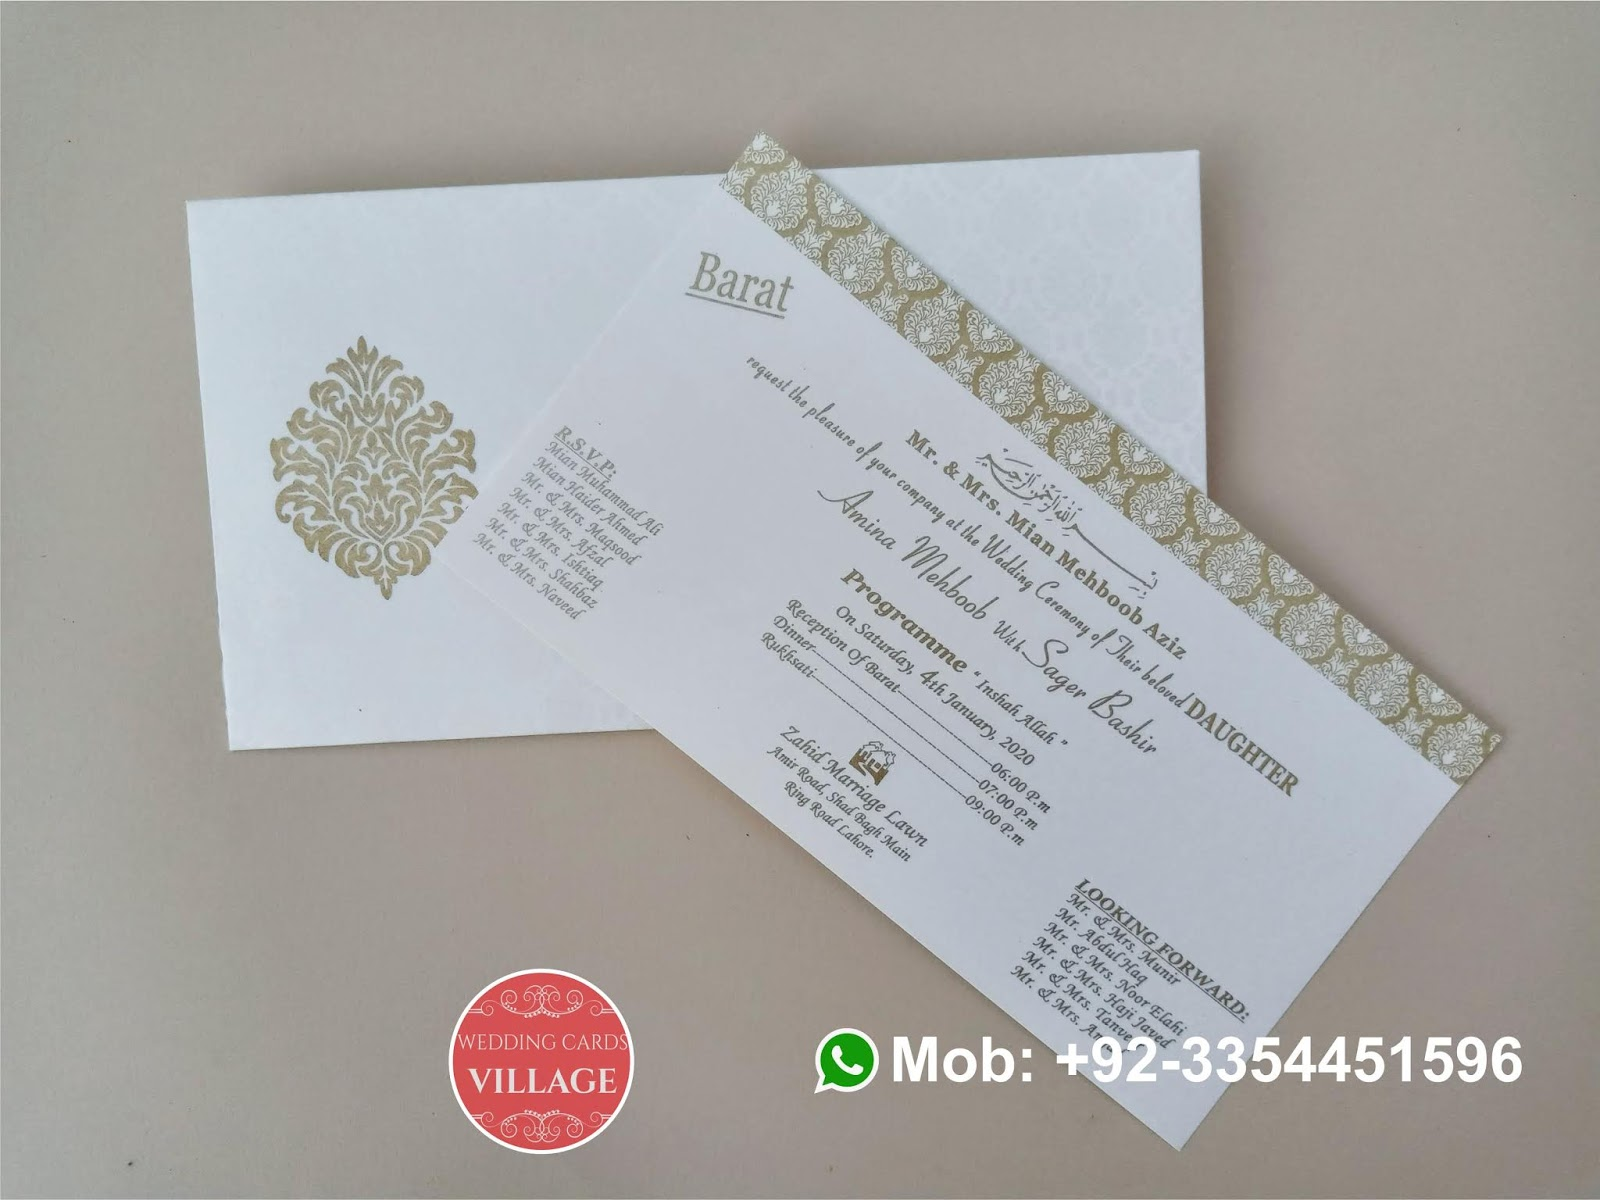 Township Printerswedding Cards In Lahore Wedding Cards In Pakistan Cheap Wedding Cards Pakistani Wedding Cards Box Wedding Cards Scroll Wedding Cards V